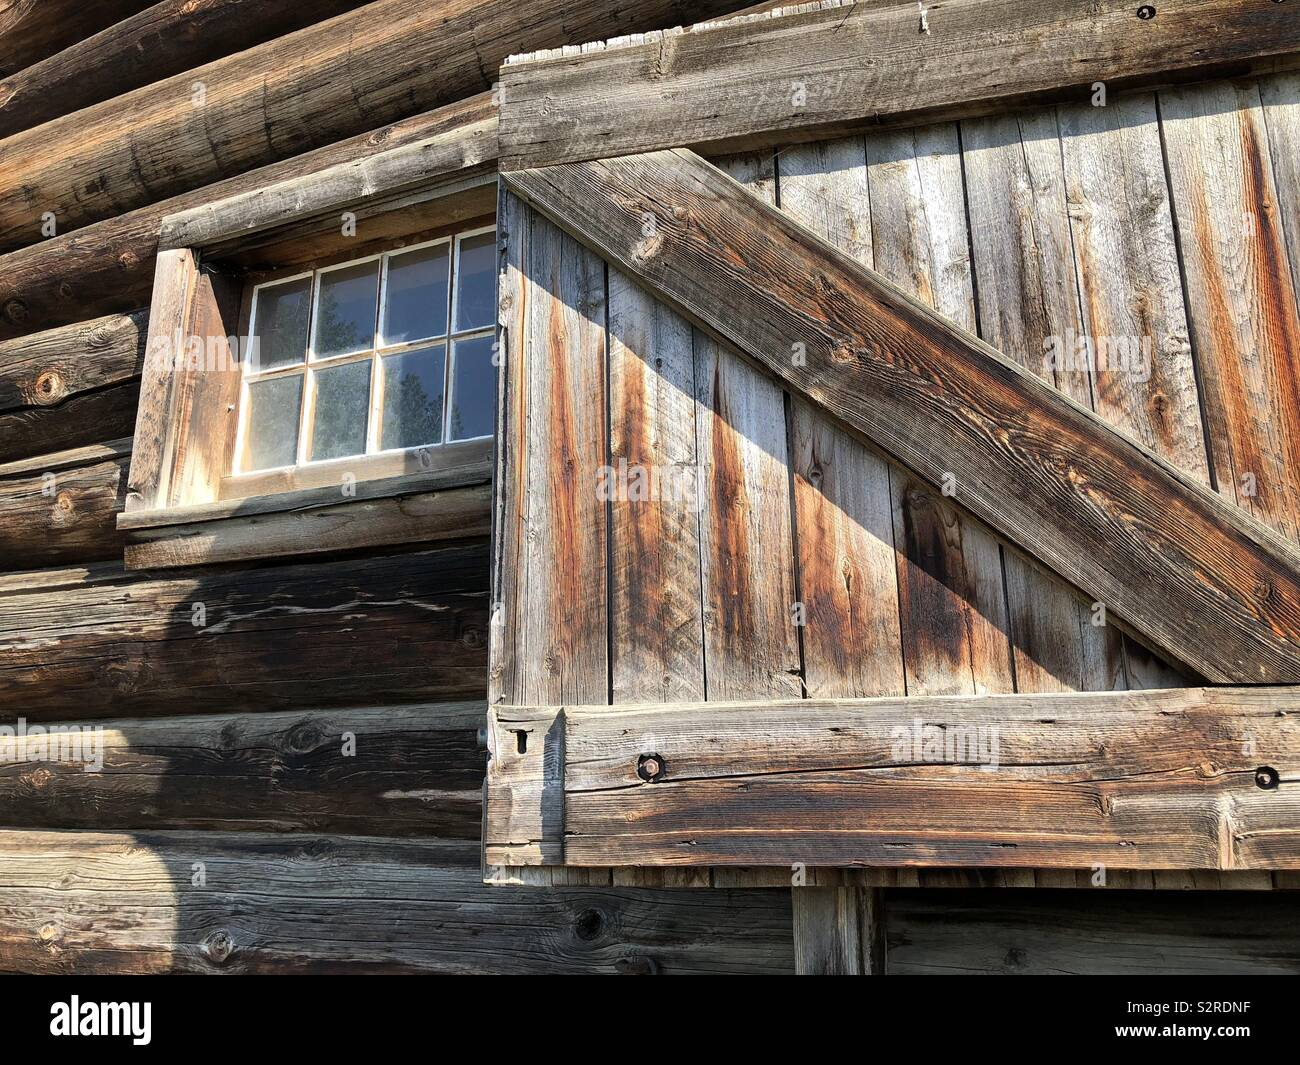 Heritage Barn At The Historic Fur Trading Post And